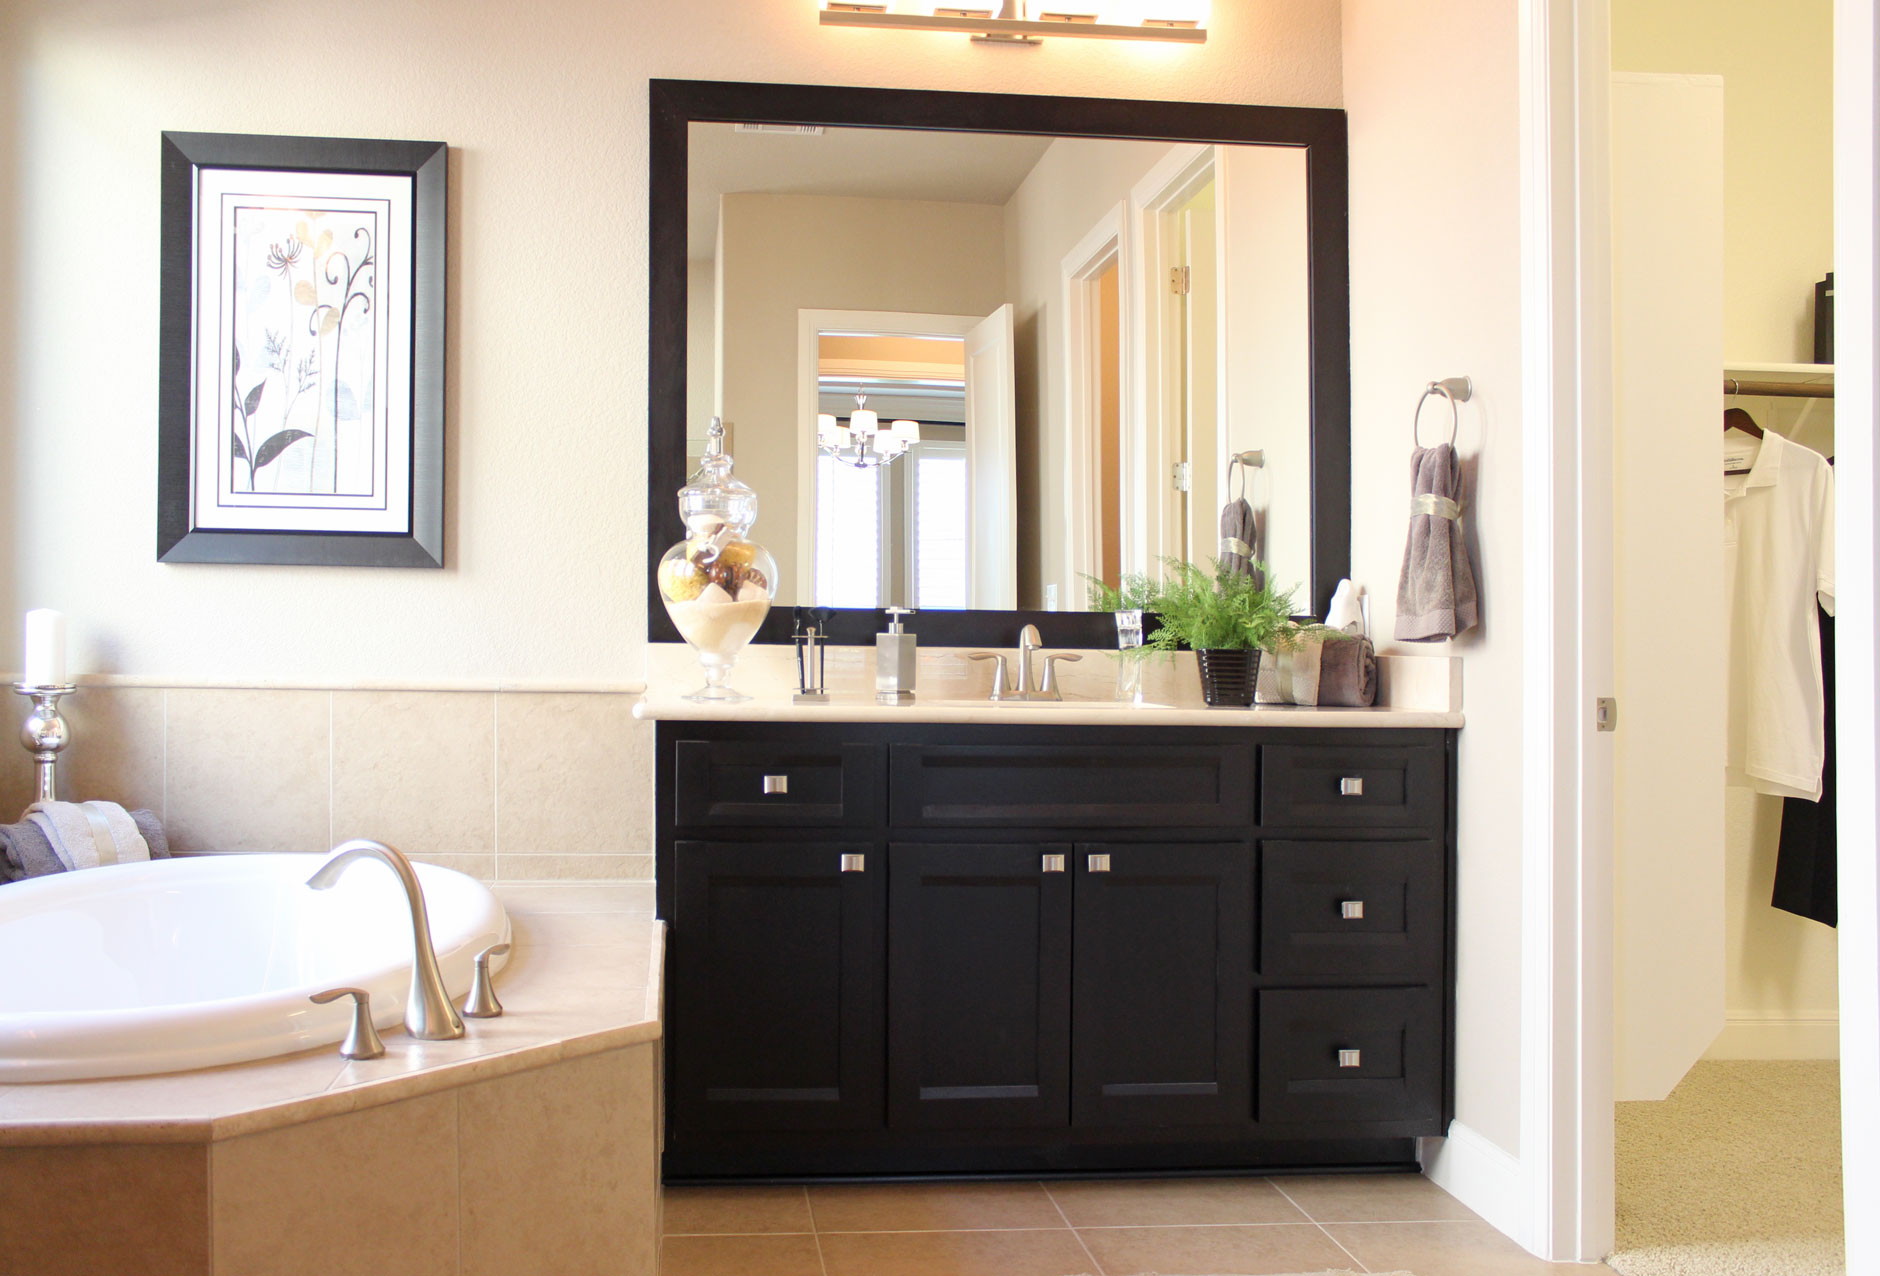 Burrows Cabinets master bath cabinets in Beech Rye with Briscoe door style